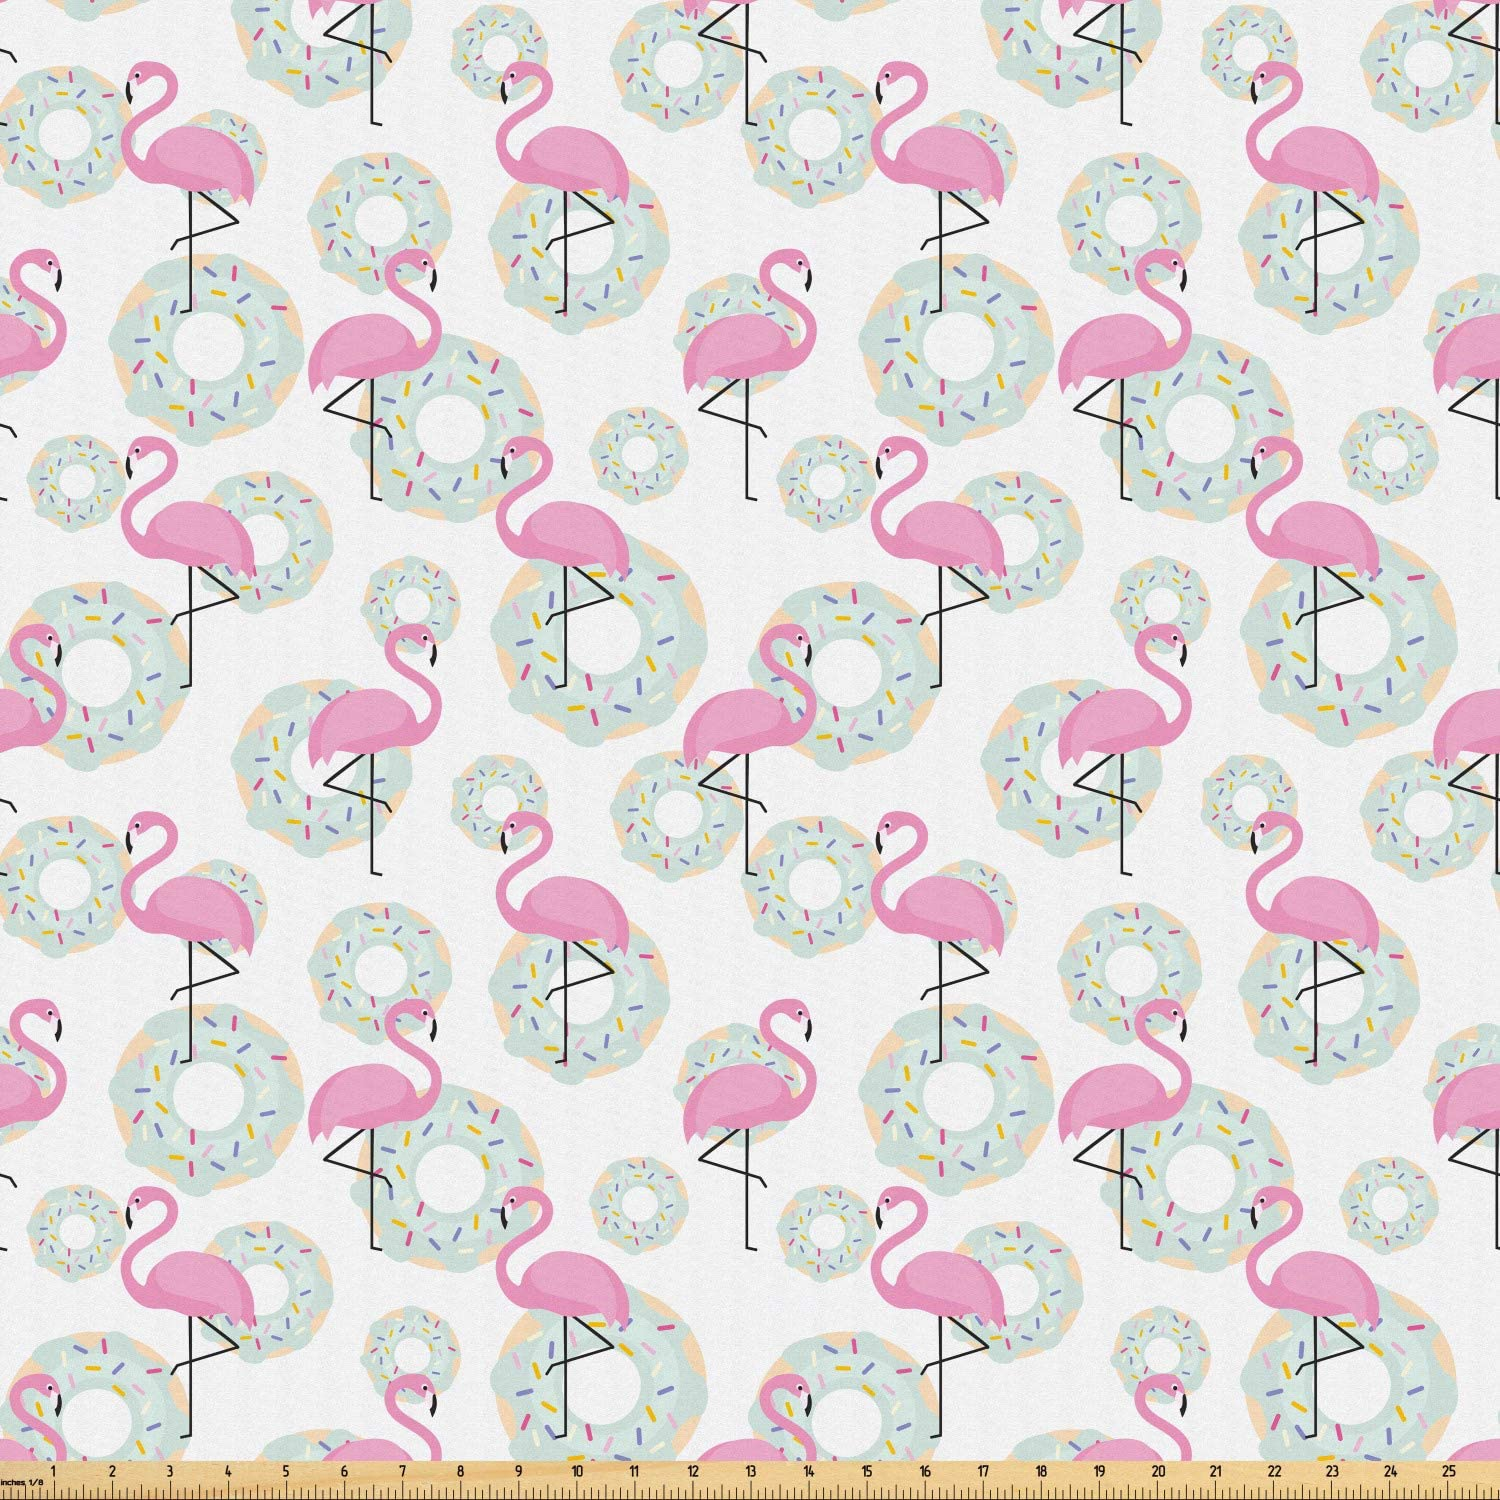 Ambesonne Flamingo Fabric by The Yard, Pink Flamingos and Donuts Tropical Hawaiian Animals Delicious Desserts, Microfiber Fabric for Arts and Crafts Textiles & Decor, 10 Yards, Pink Mint Green Beige